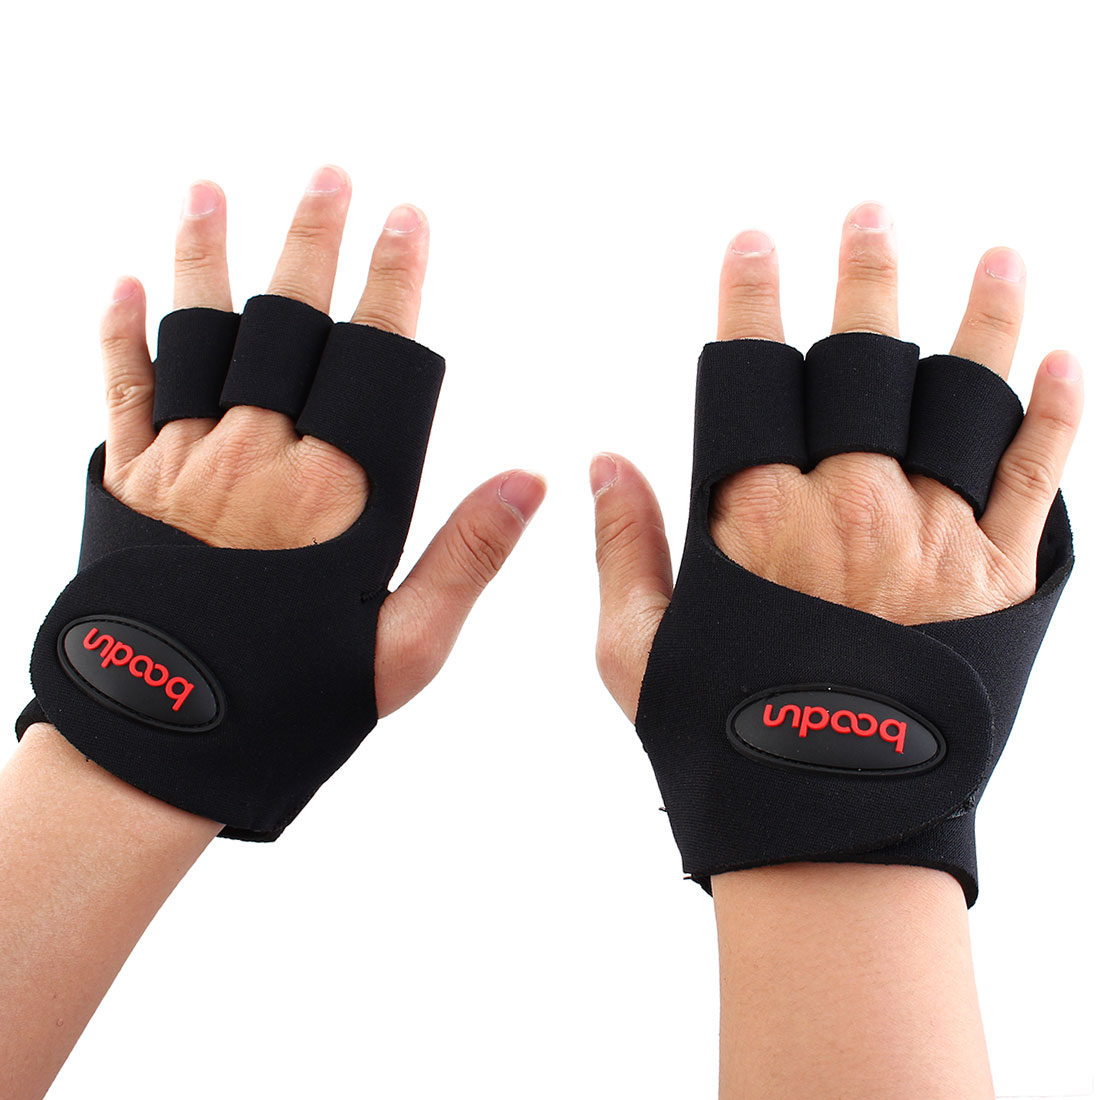 Boodun Authorized Cycling Exercise Training Gloves Size L Pair